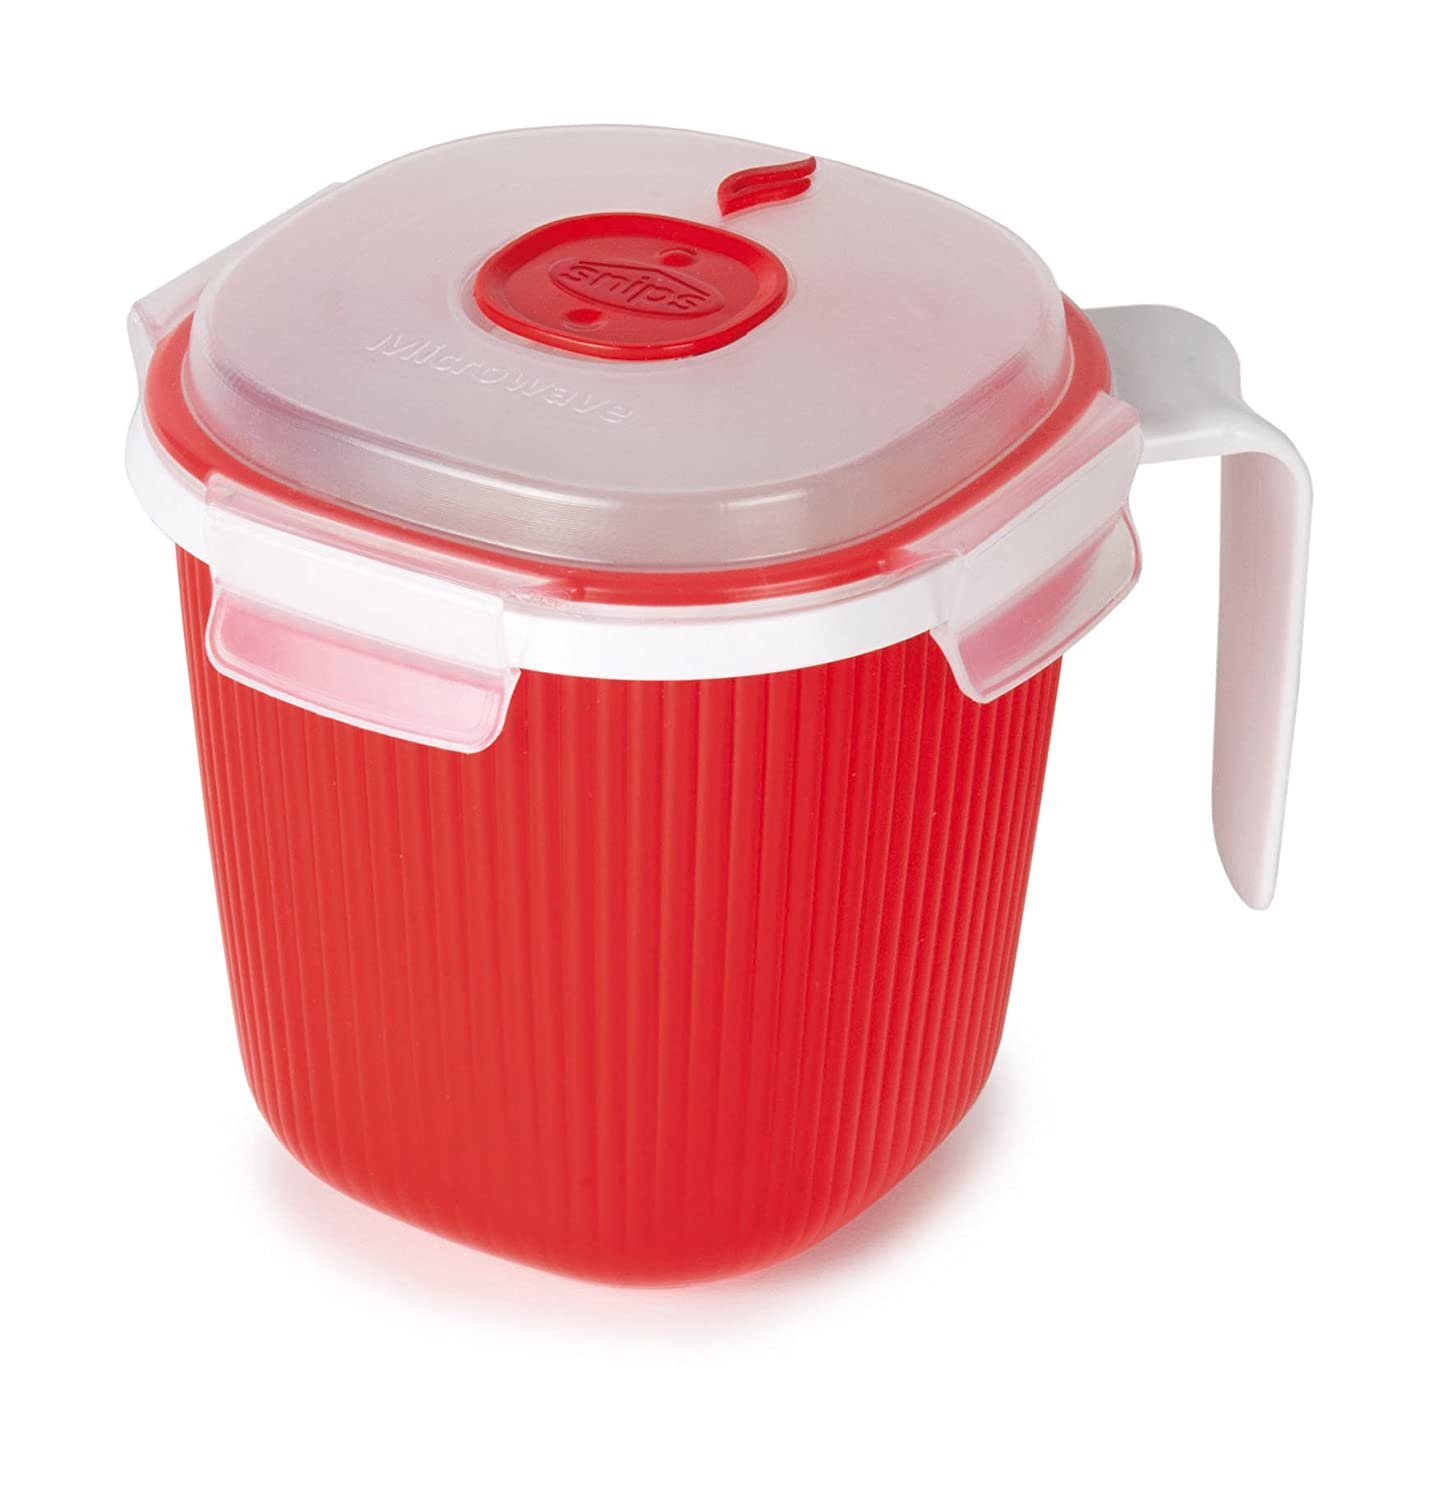 Snips 000704 Microwave Cookware Steamer, 135.2 Oz./16.9 Cups, Red